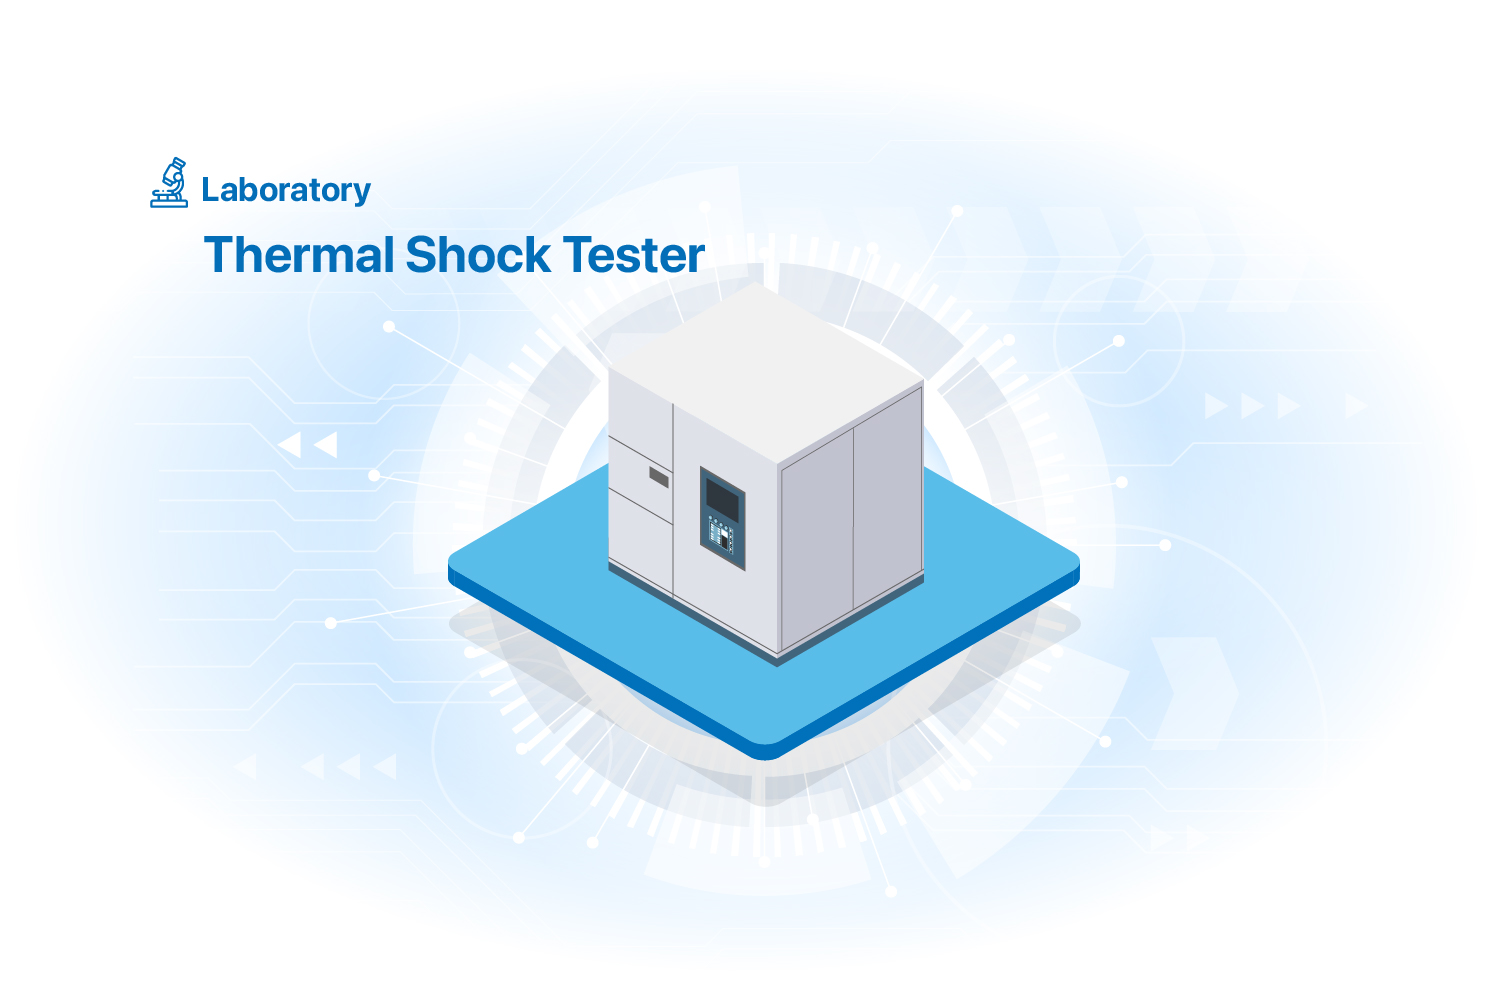 proimages/PIC/trade_show/BC_E-BOOTH/05_Laboratory/5.6_Lab_Thermal_Shock_Tester.jpg